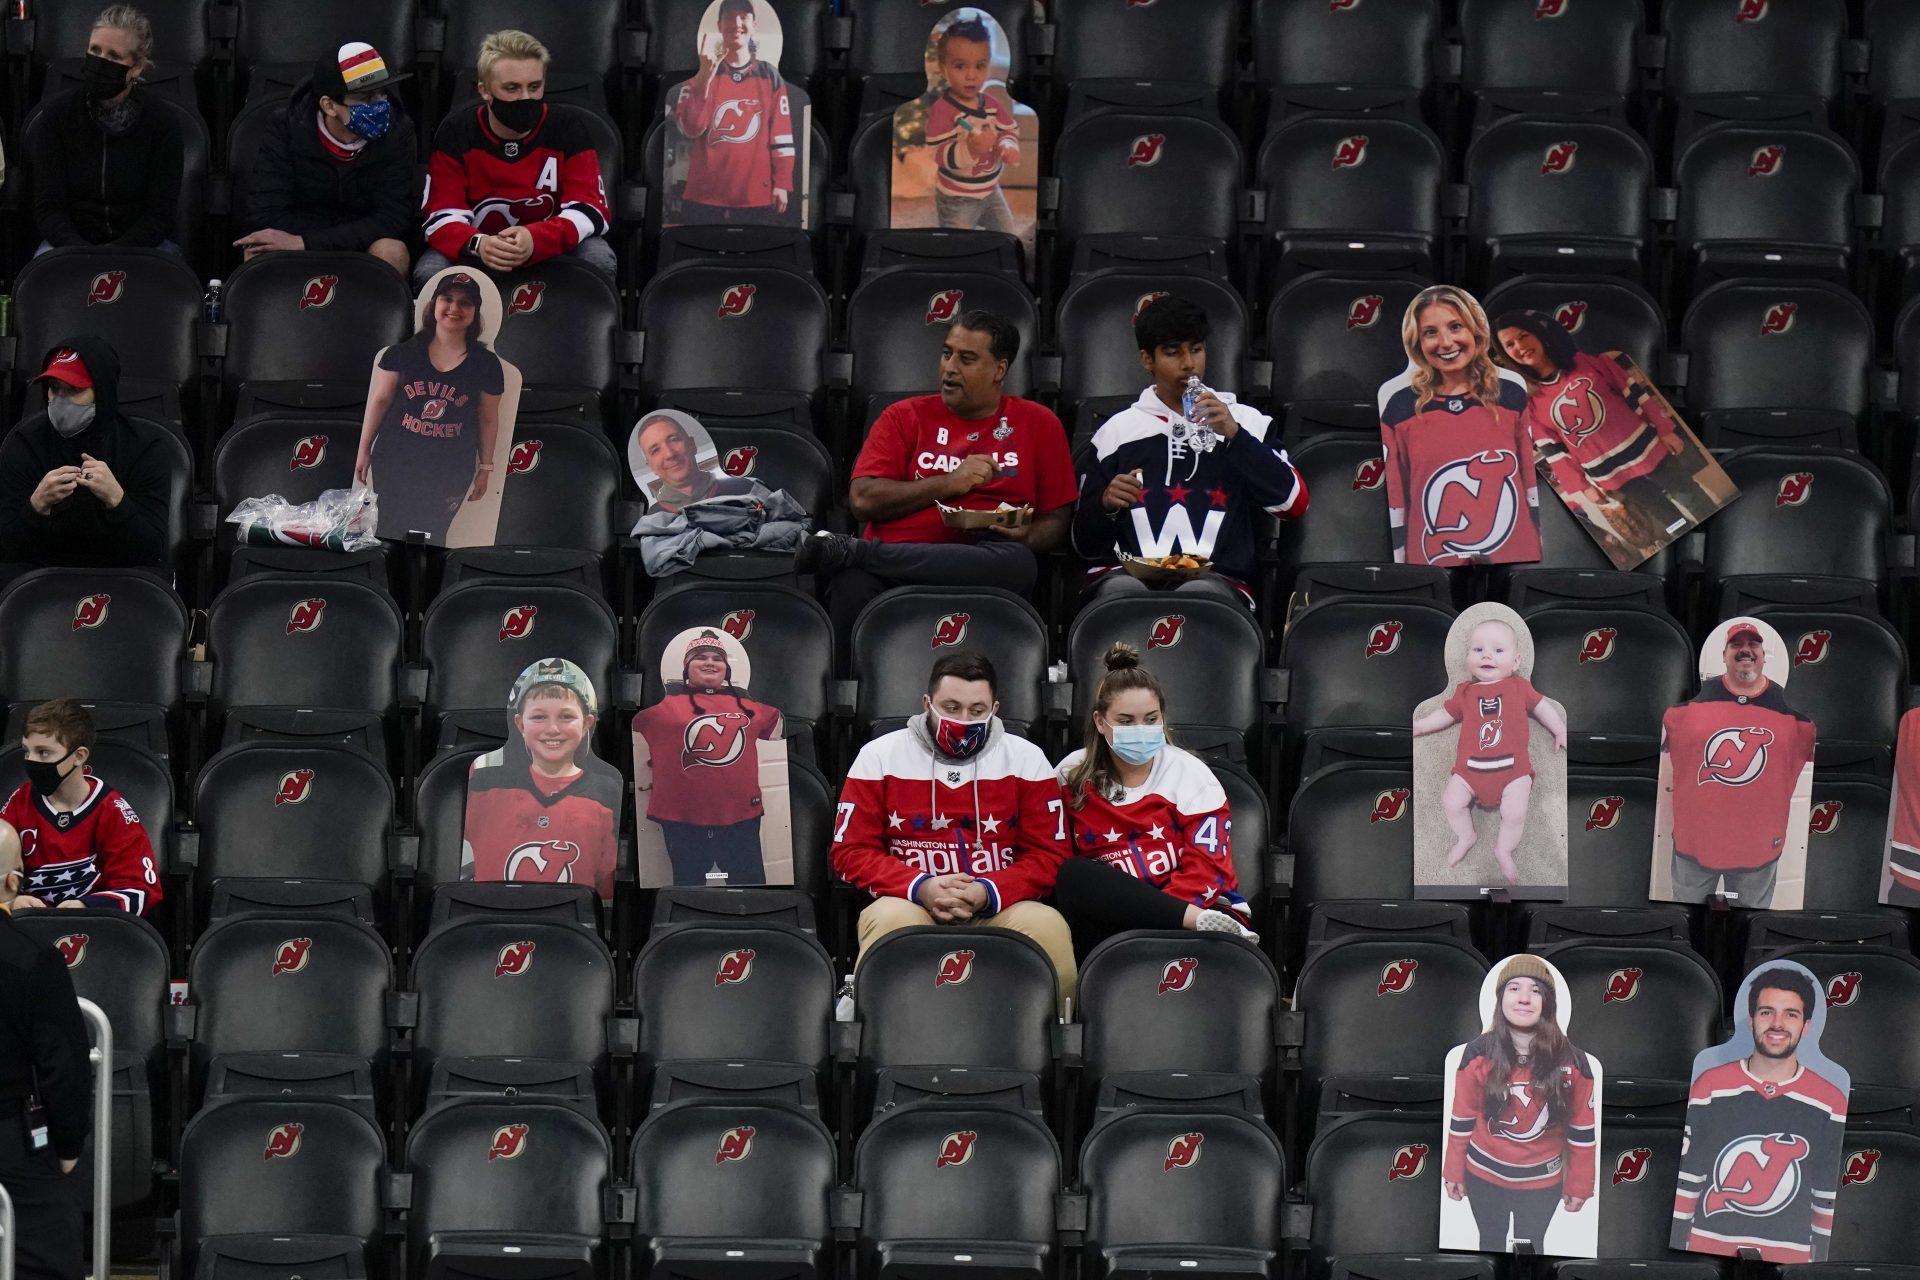 In this April 4, 2021, file photo, Washington Capitals fans sit among cutouts of New Jersey Devils fans as they watch the second period of an NHL hockey game between the Devils and the Capitals in Newark, N.J. Nearly half of new coronavirus infections nationwide are in just five states, including New Jersey — a situation that puts pressure on the federal government to consider changing how it distributes vaccines by sending more doses to hot spots.